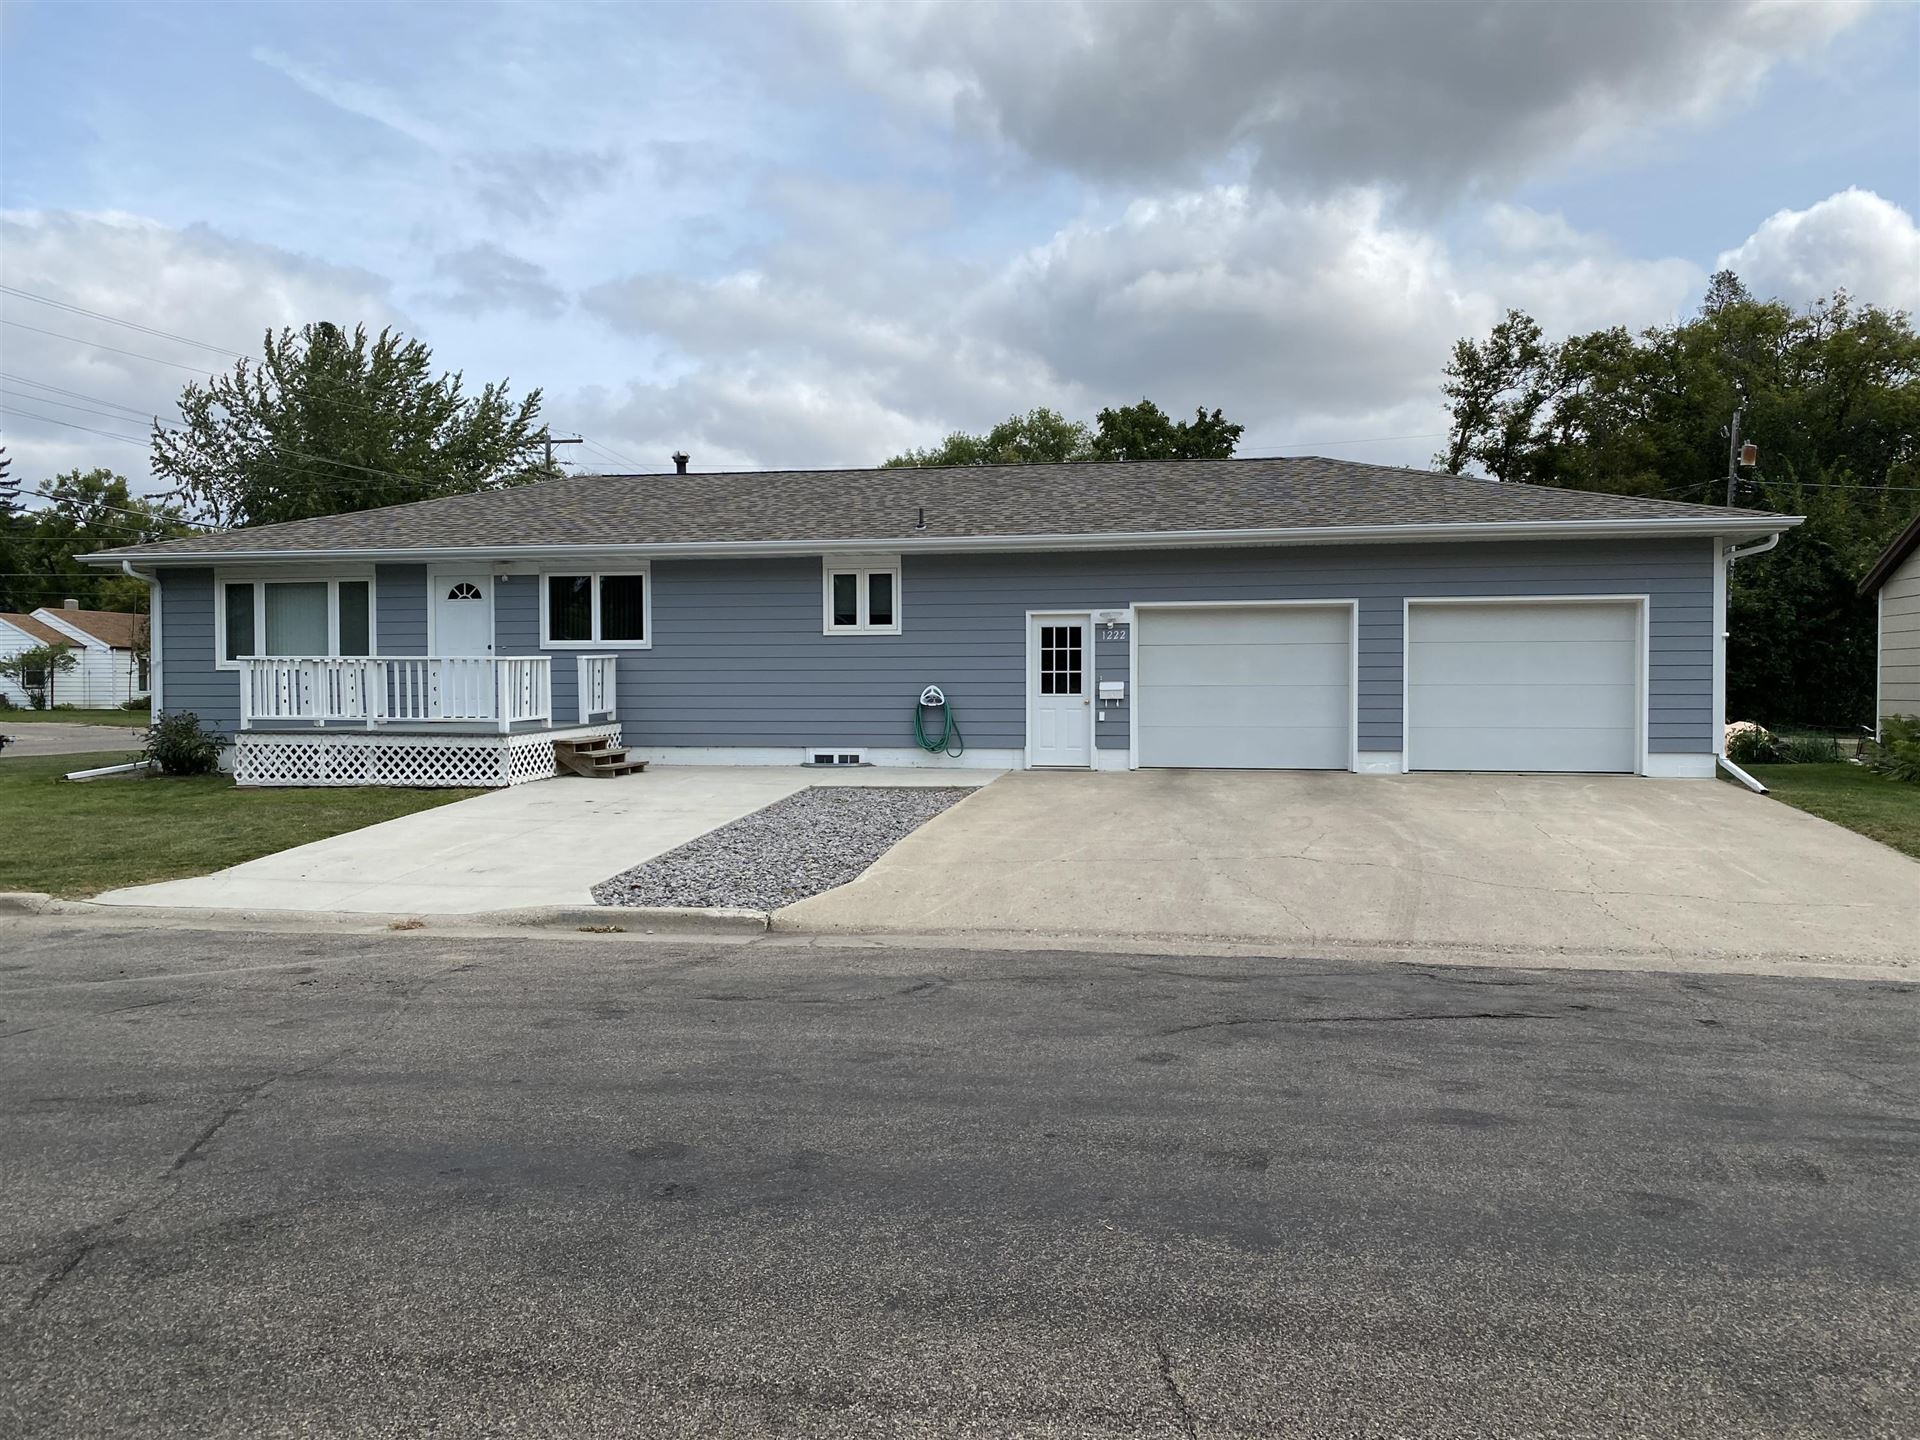 Photo for 1222 2nd Avenue NW, Jamestown, ND 58401 (MLS # 20-531)